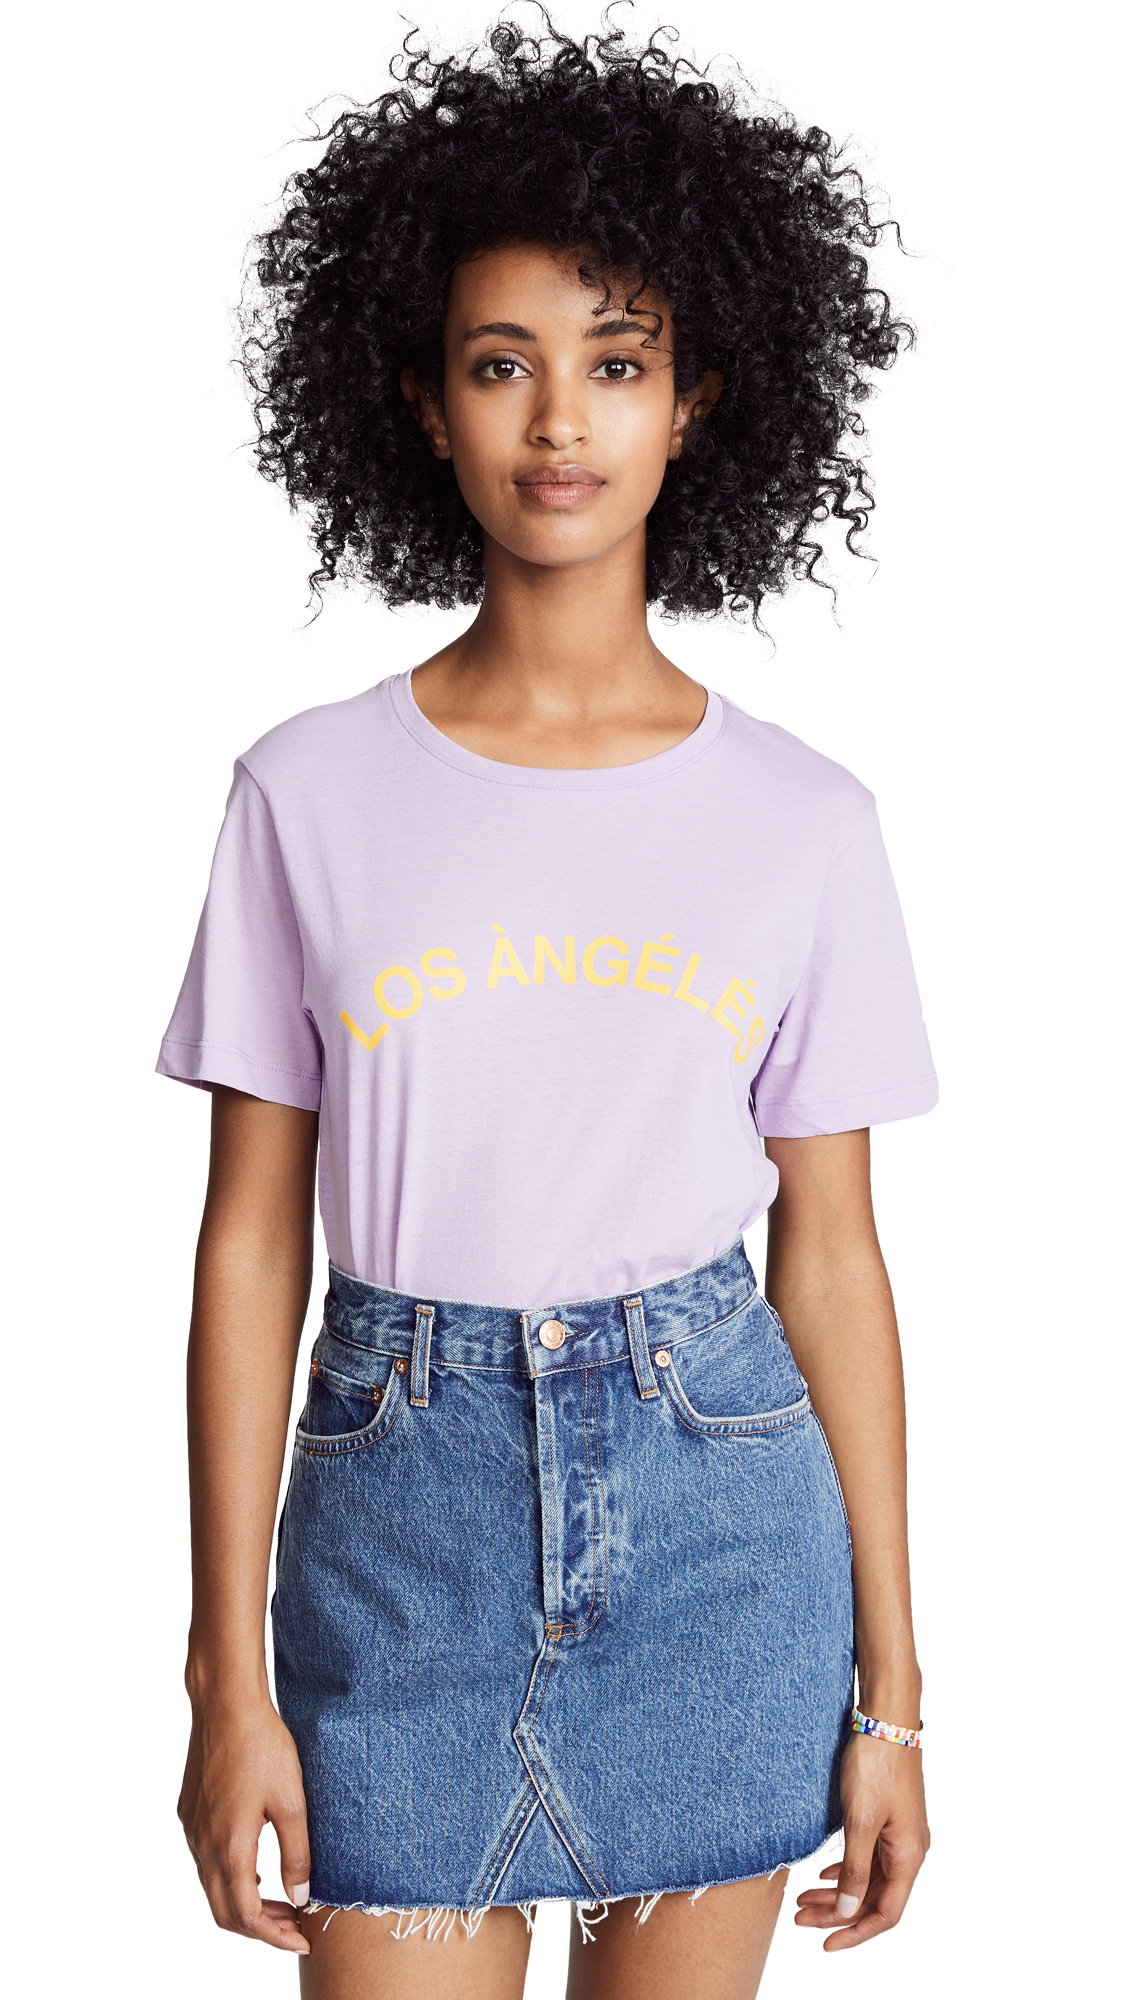 LOS ANGELES DELANEY TEE